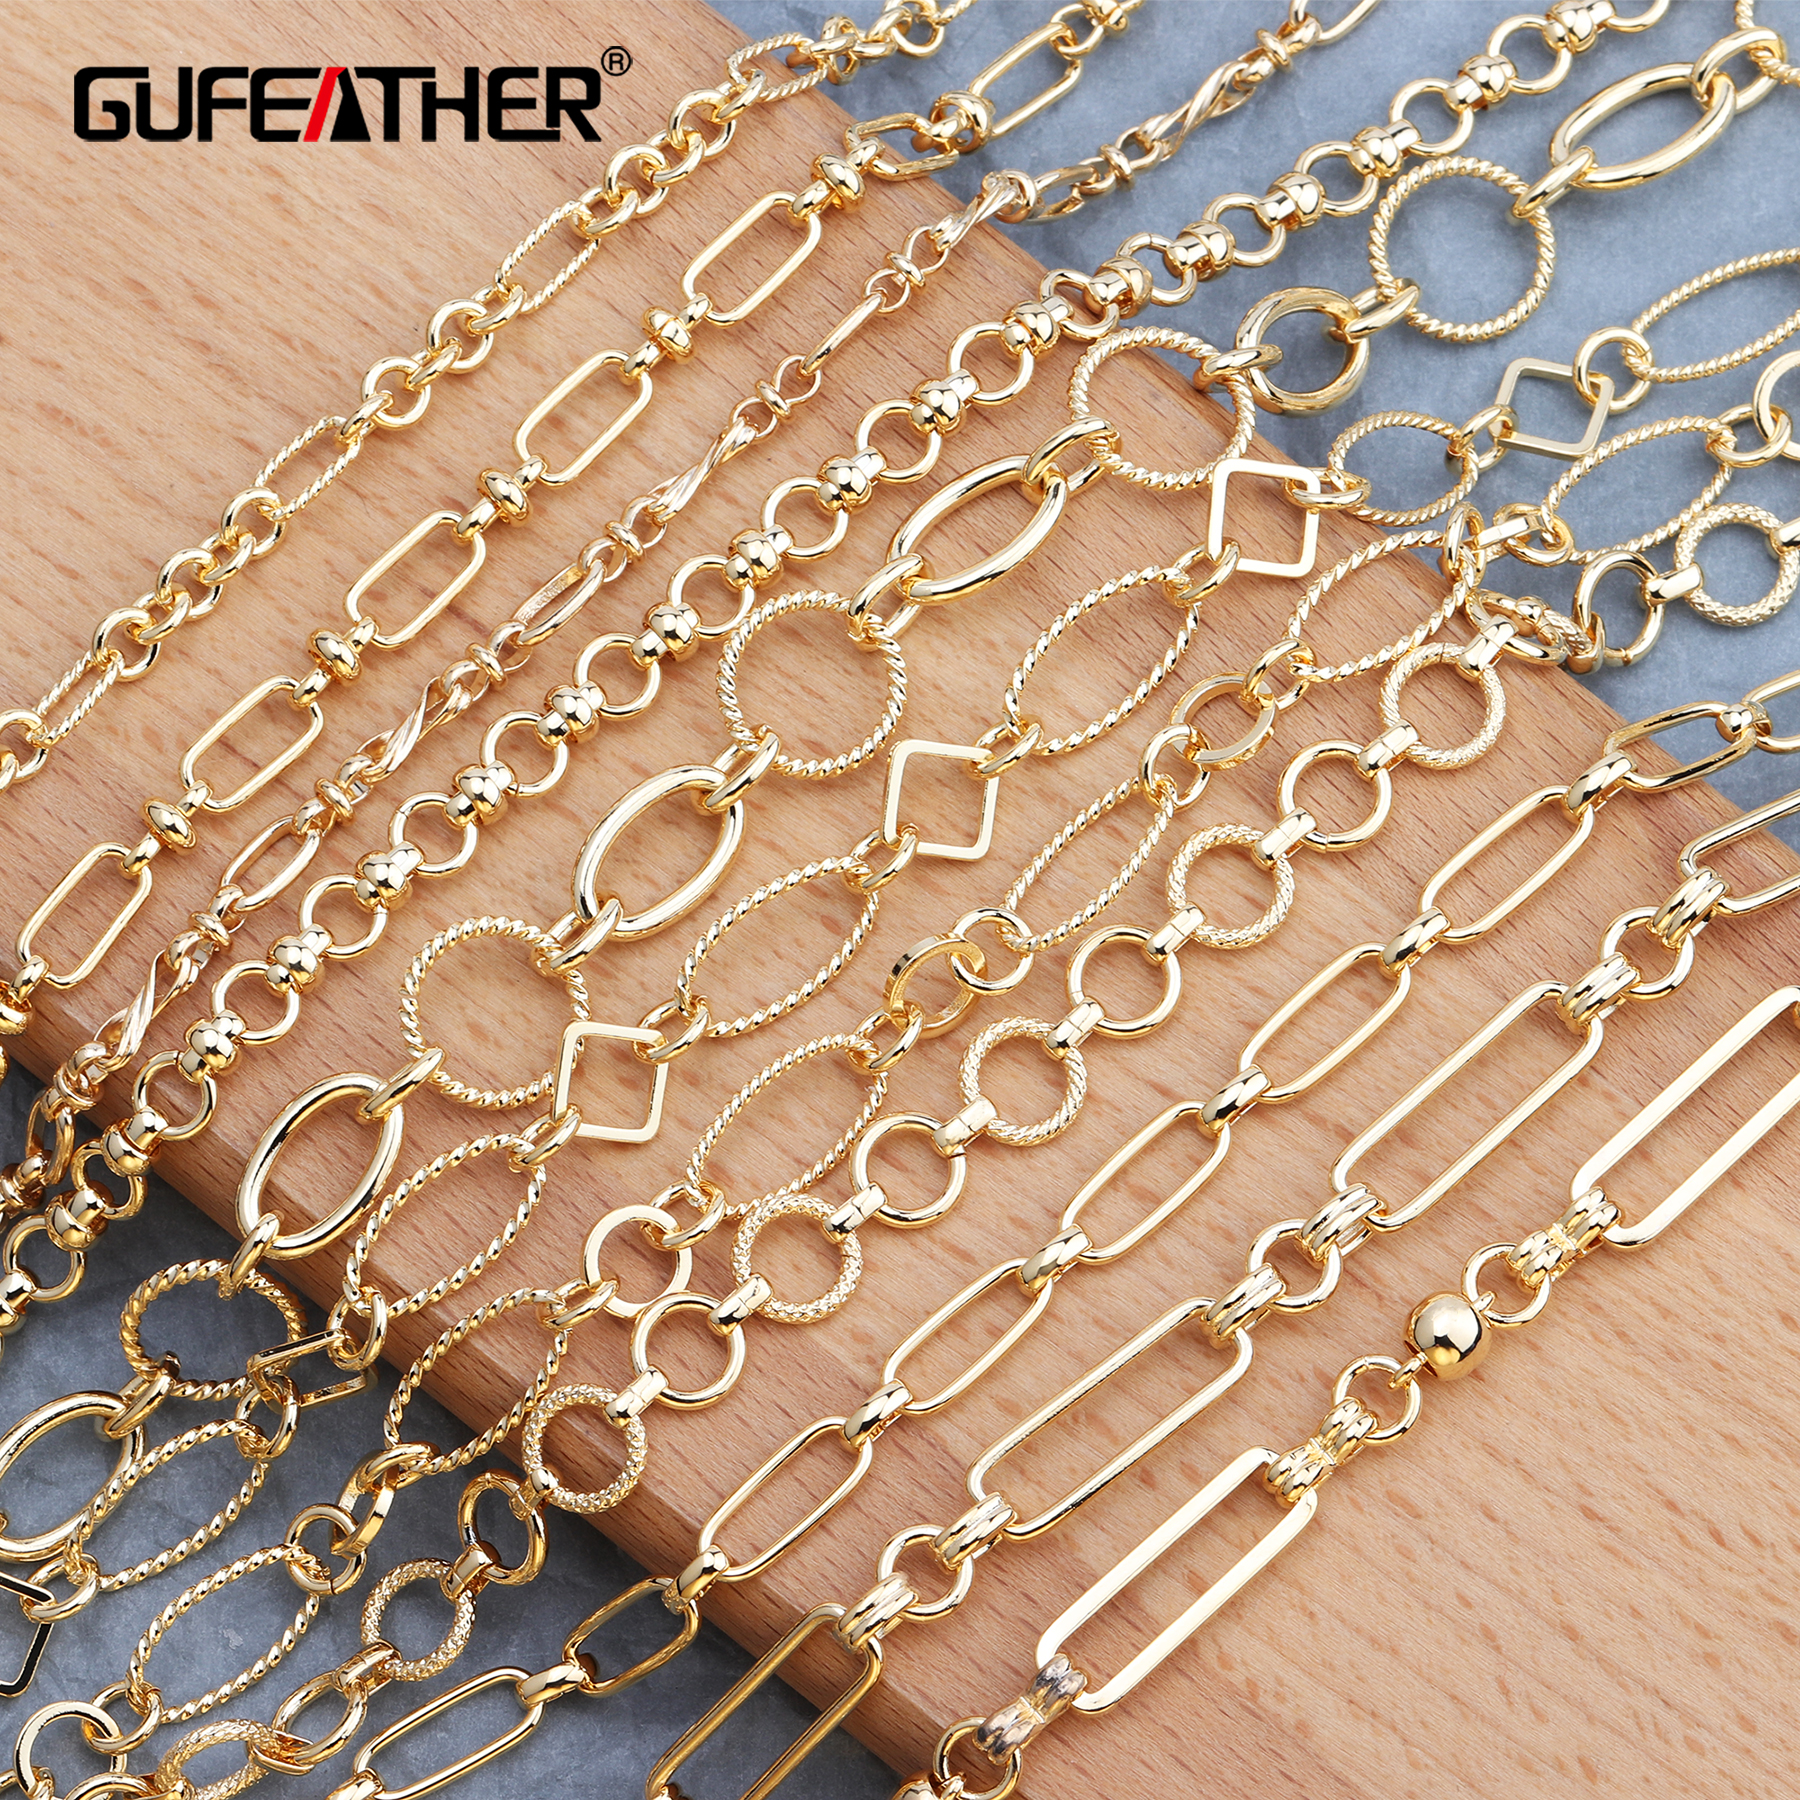 GUFEATHER  C54,jewelry Accessories,18k Gold Plated Chain,jewelry Making,hand Made,jewelry Findings,diy Earrings Necklace,1m/lot